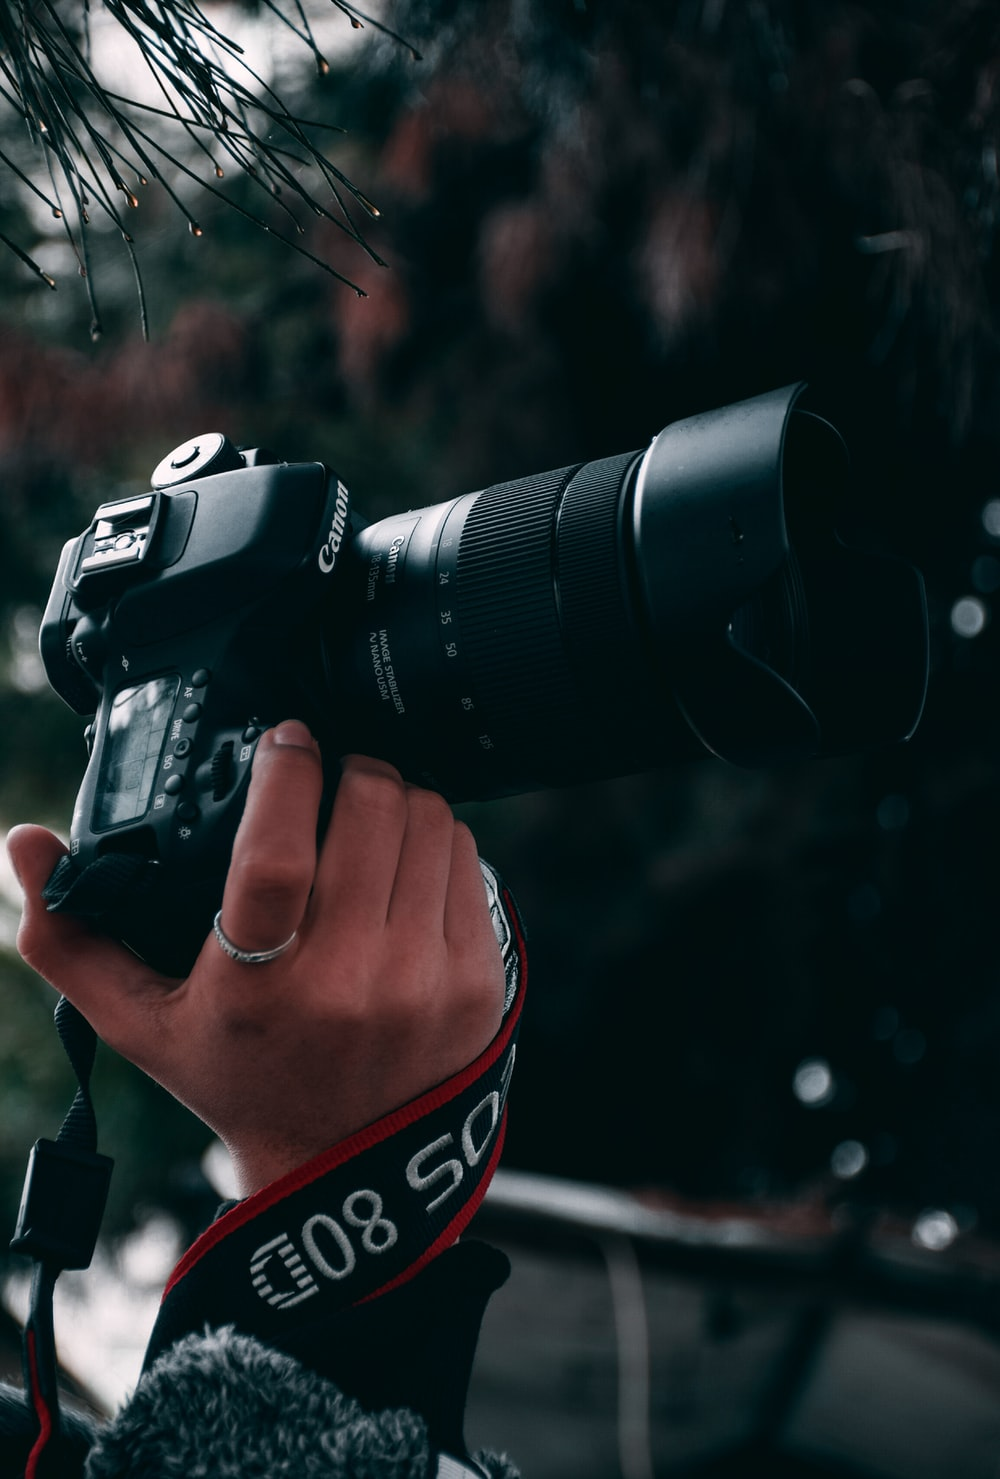 1000 Camera Wallpaper Pictures Download Free Images On Unsplash